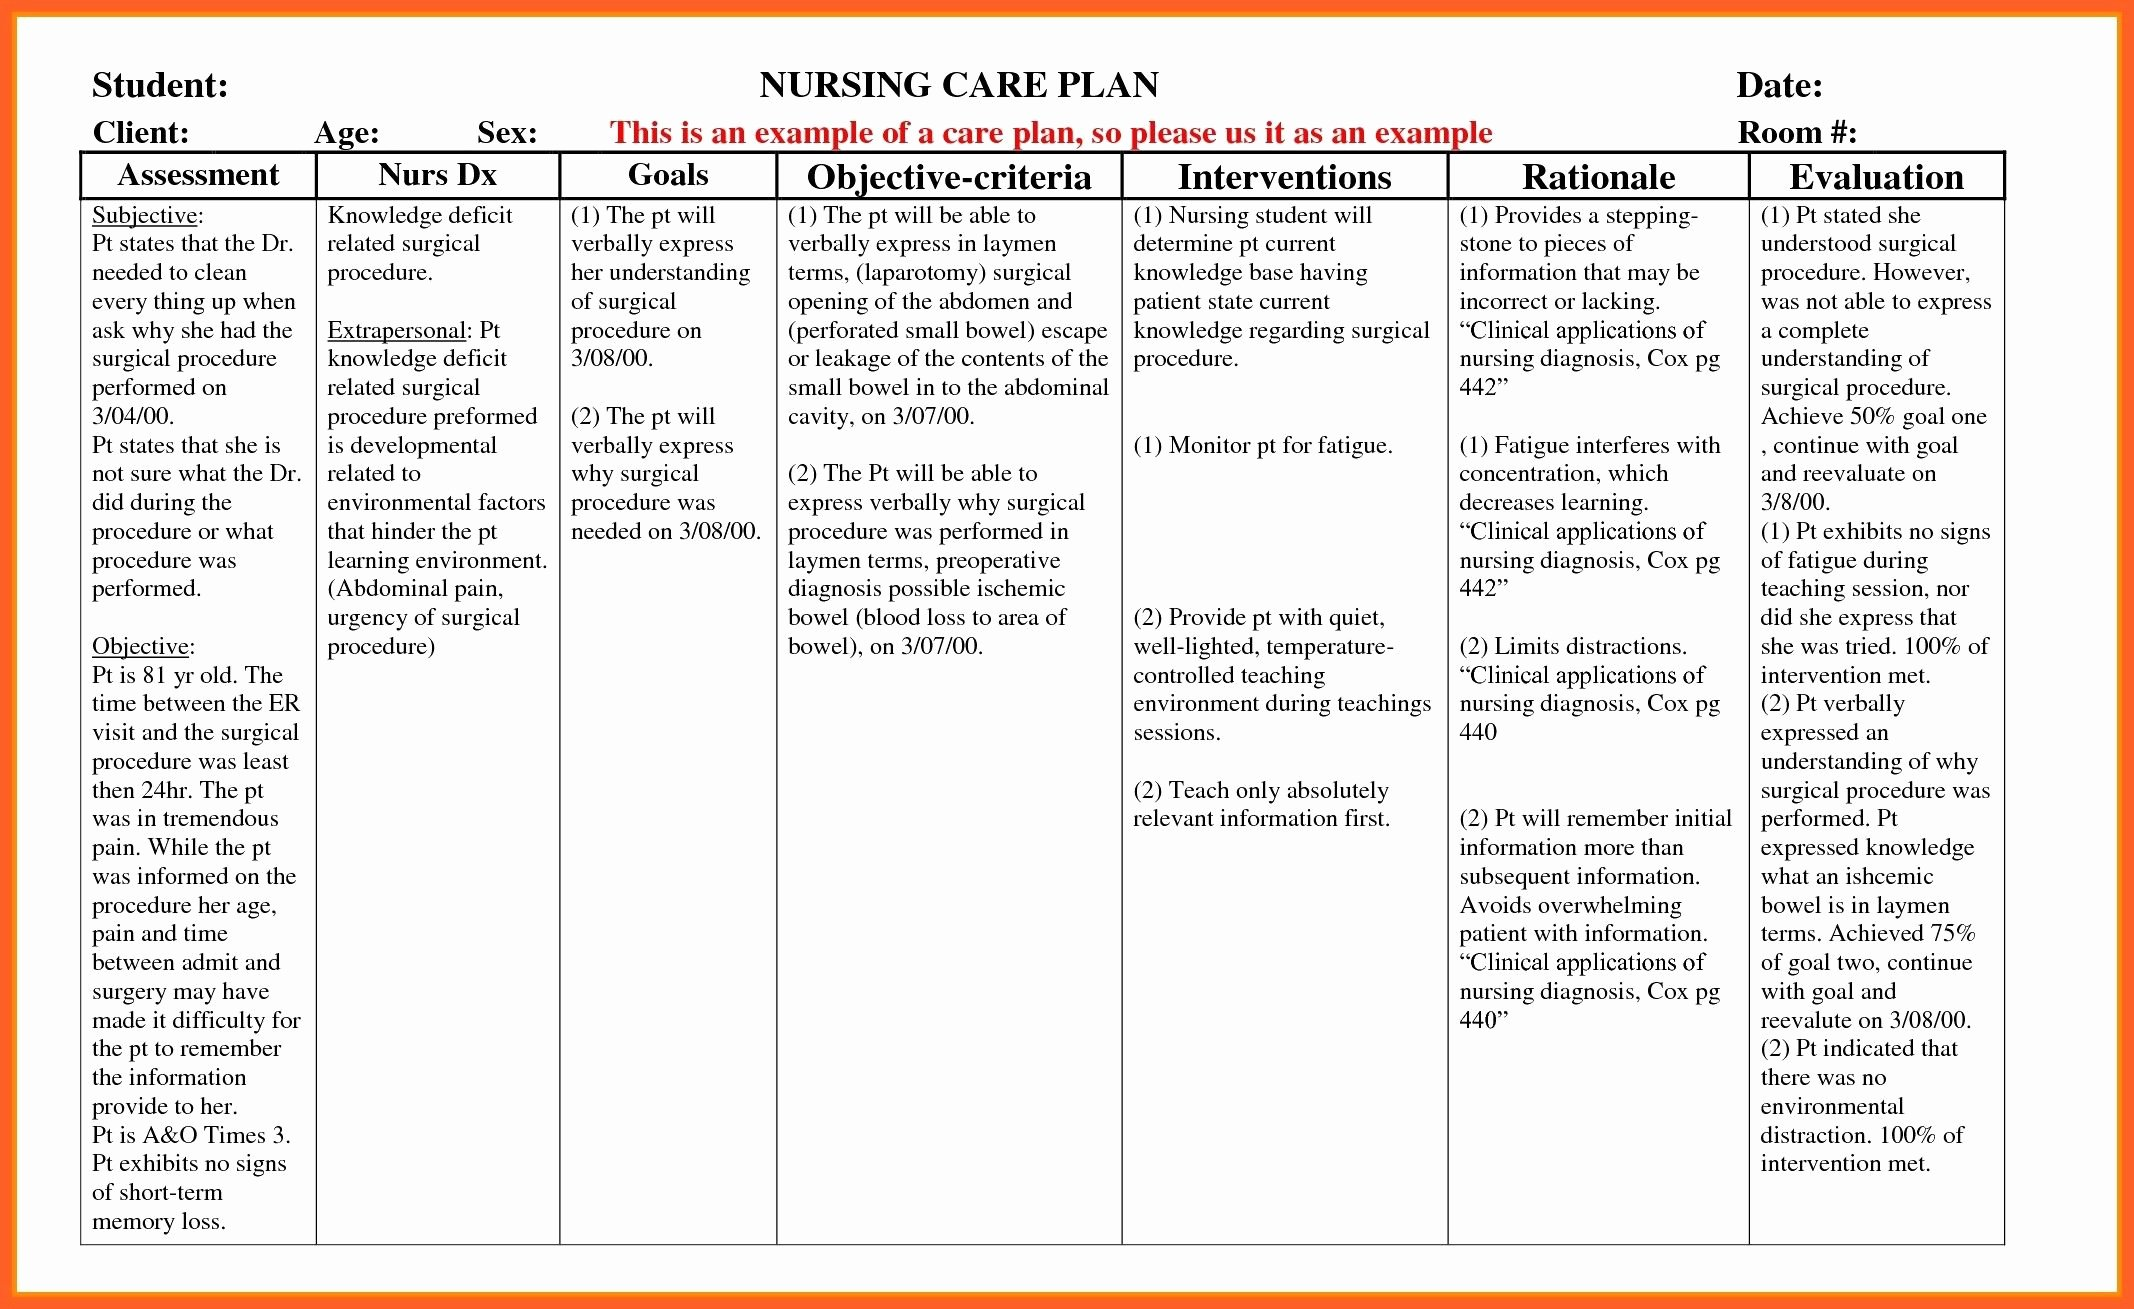 Nursing Care Plans Template Awesome Example Care Plan Template for Elderly Nursing Home